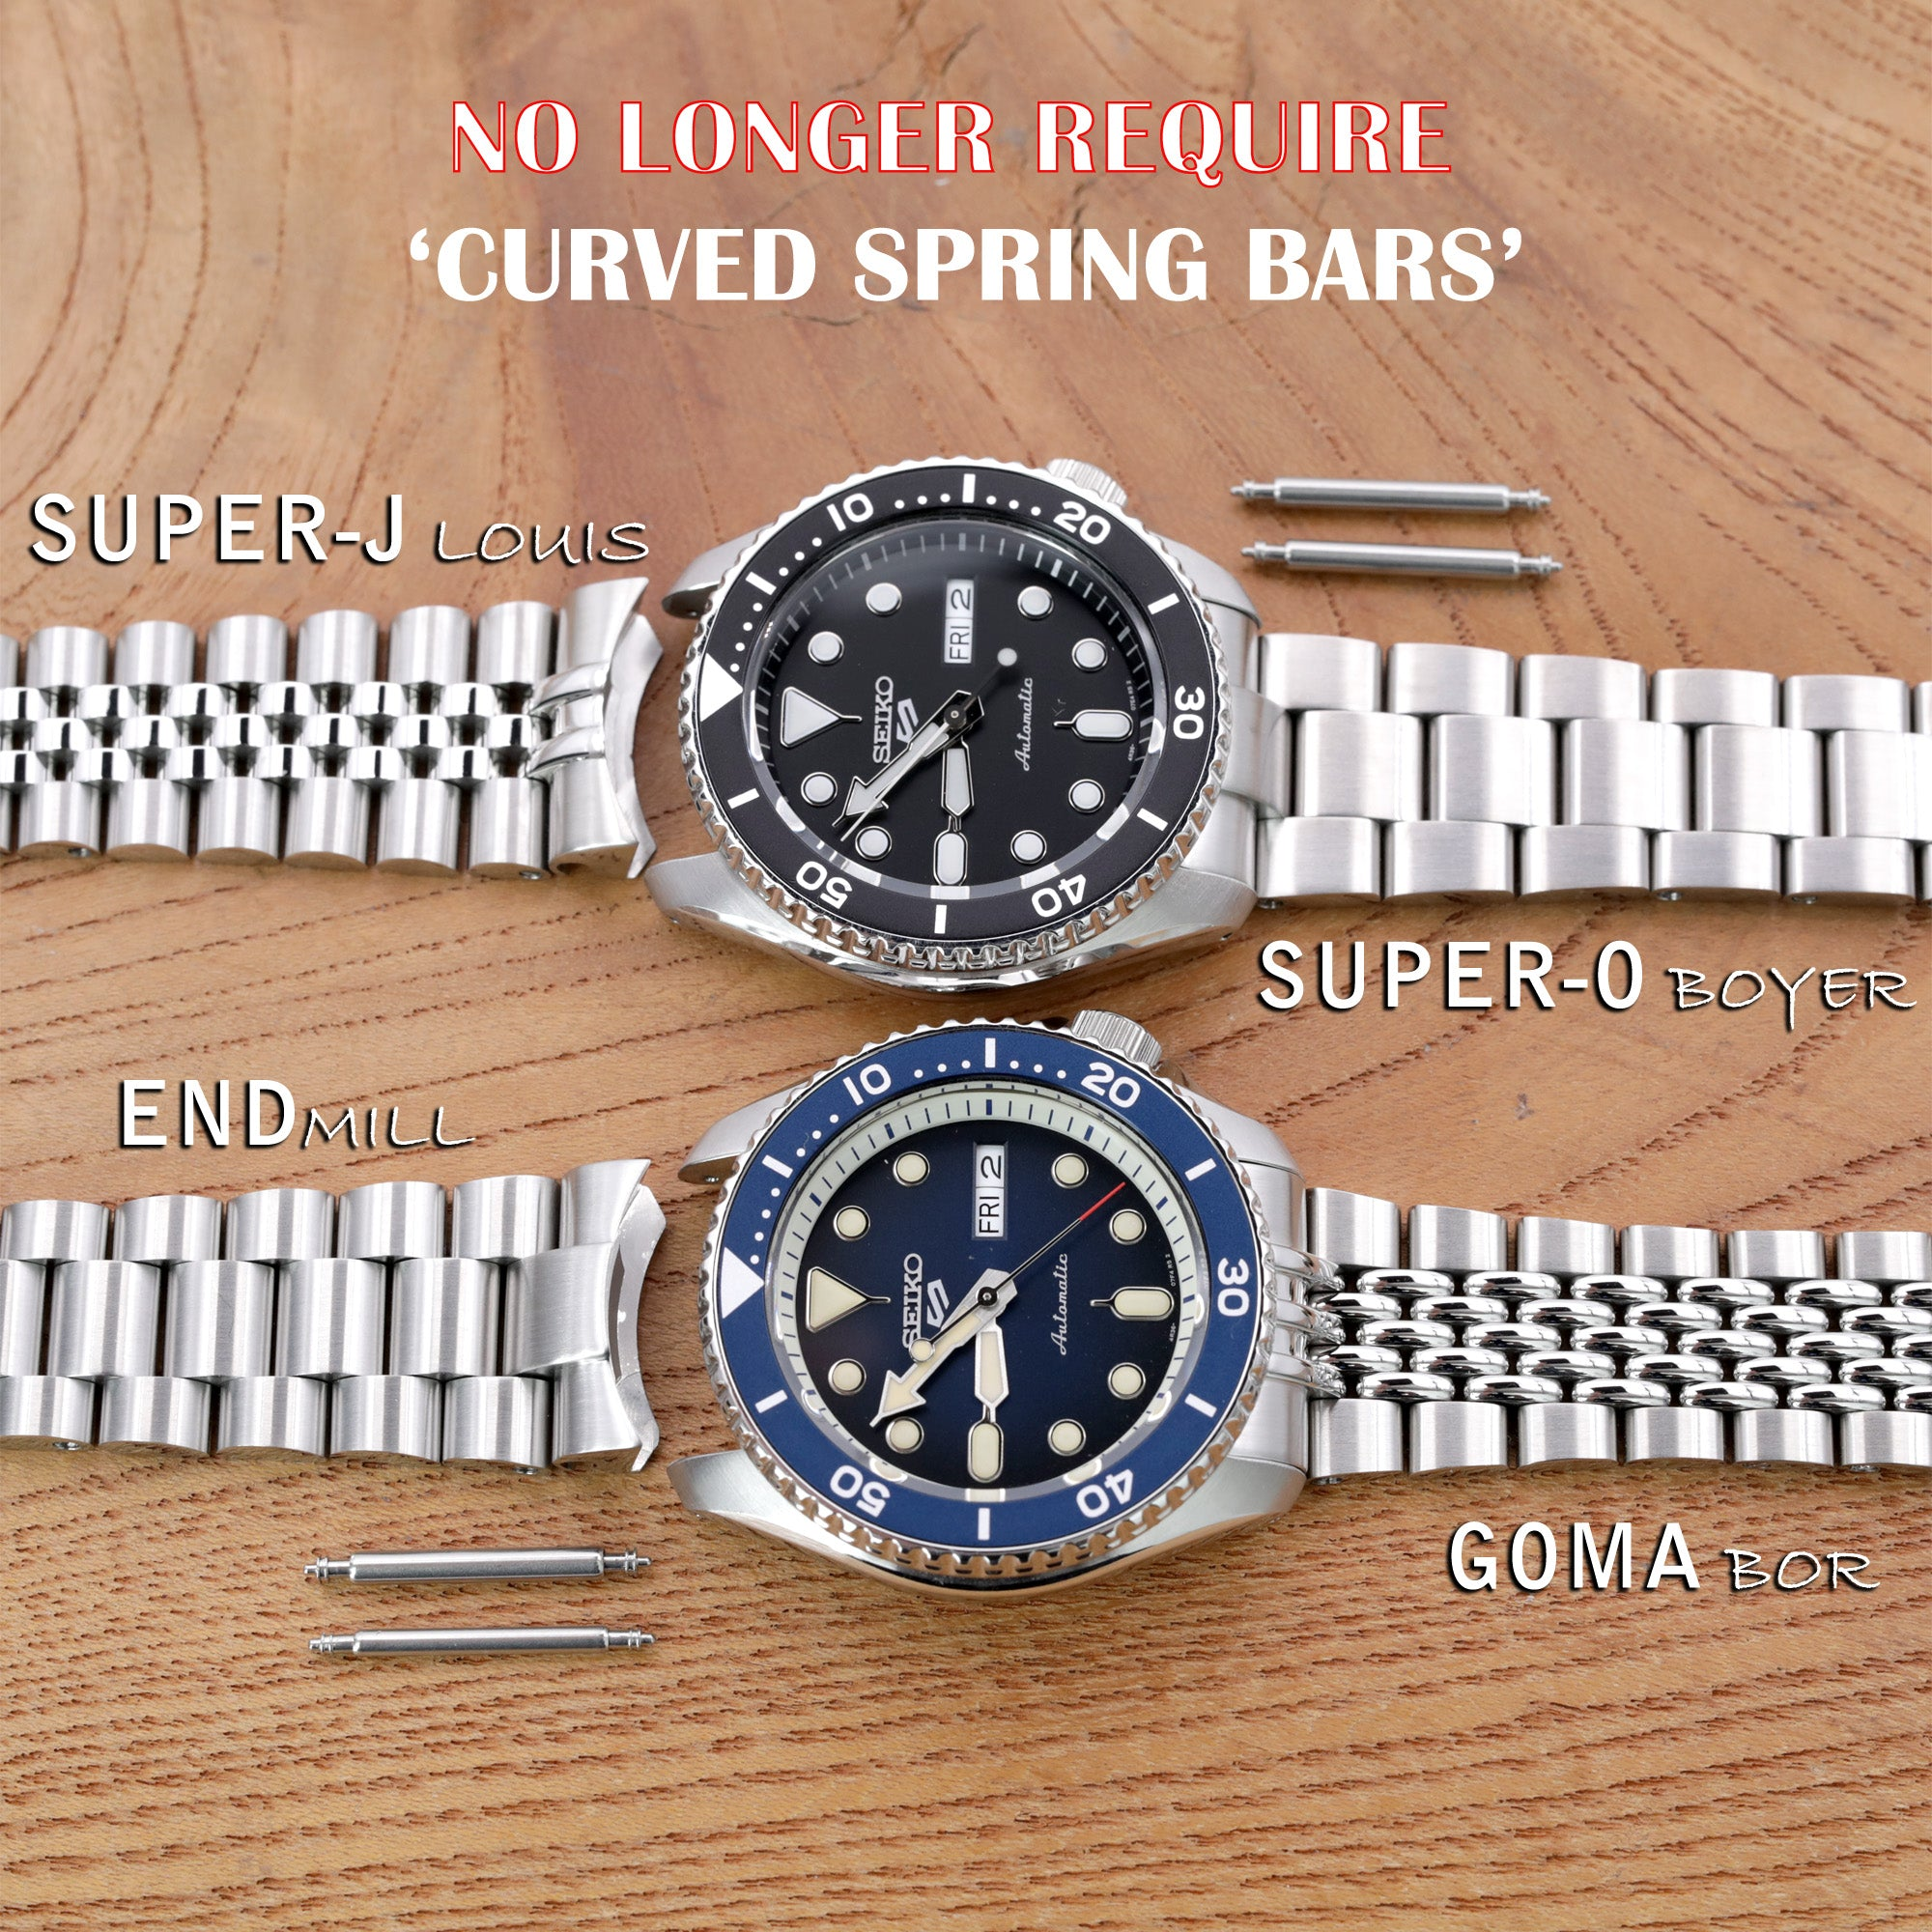 Seiko watch bands for Seiko 5 sports by Strapcode